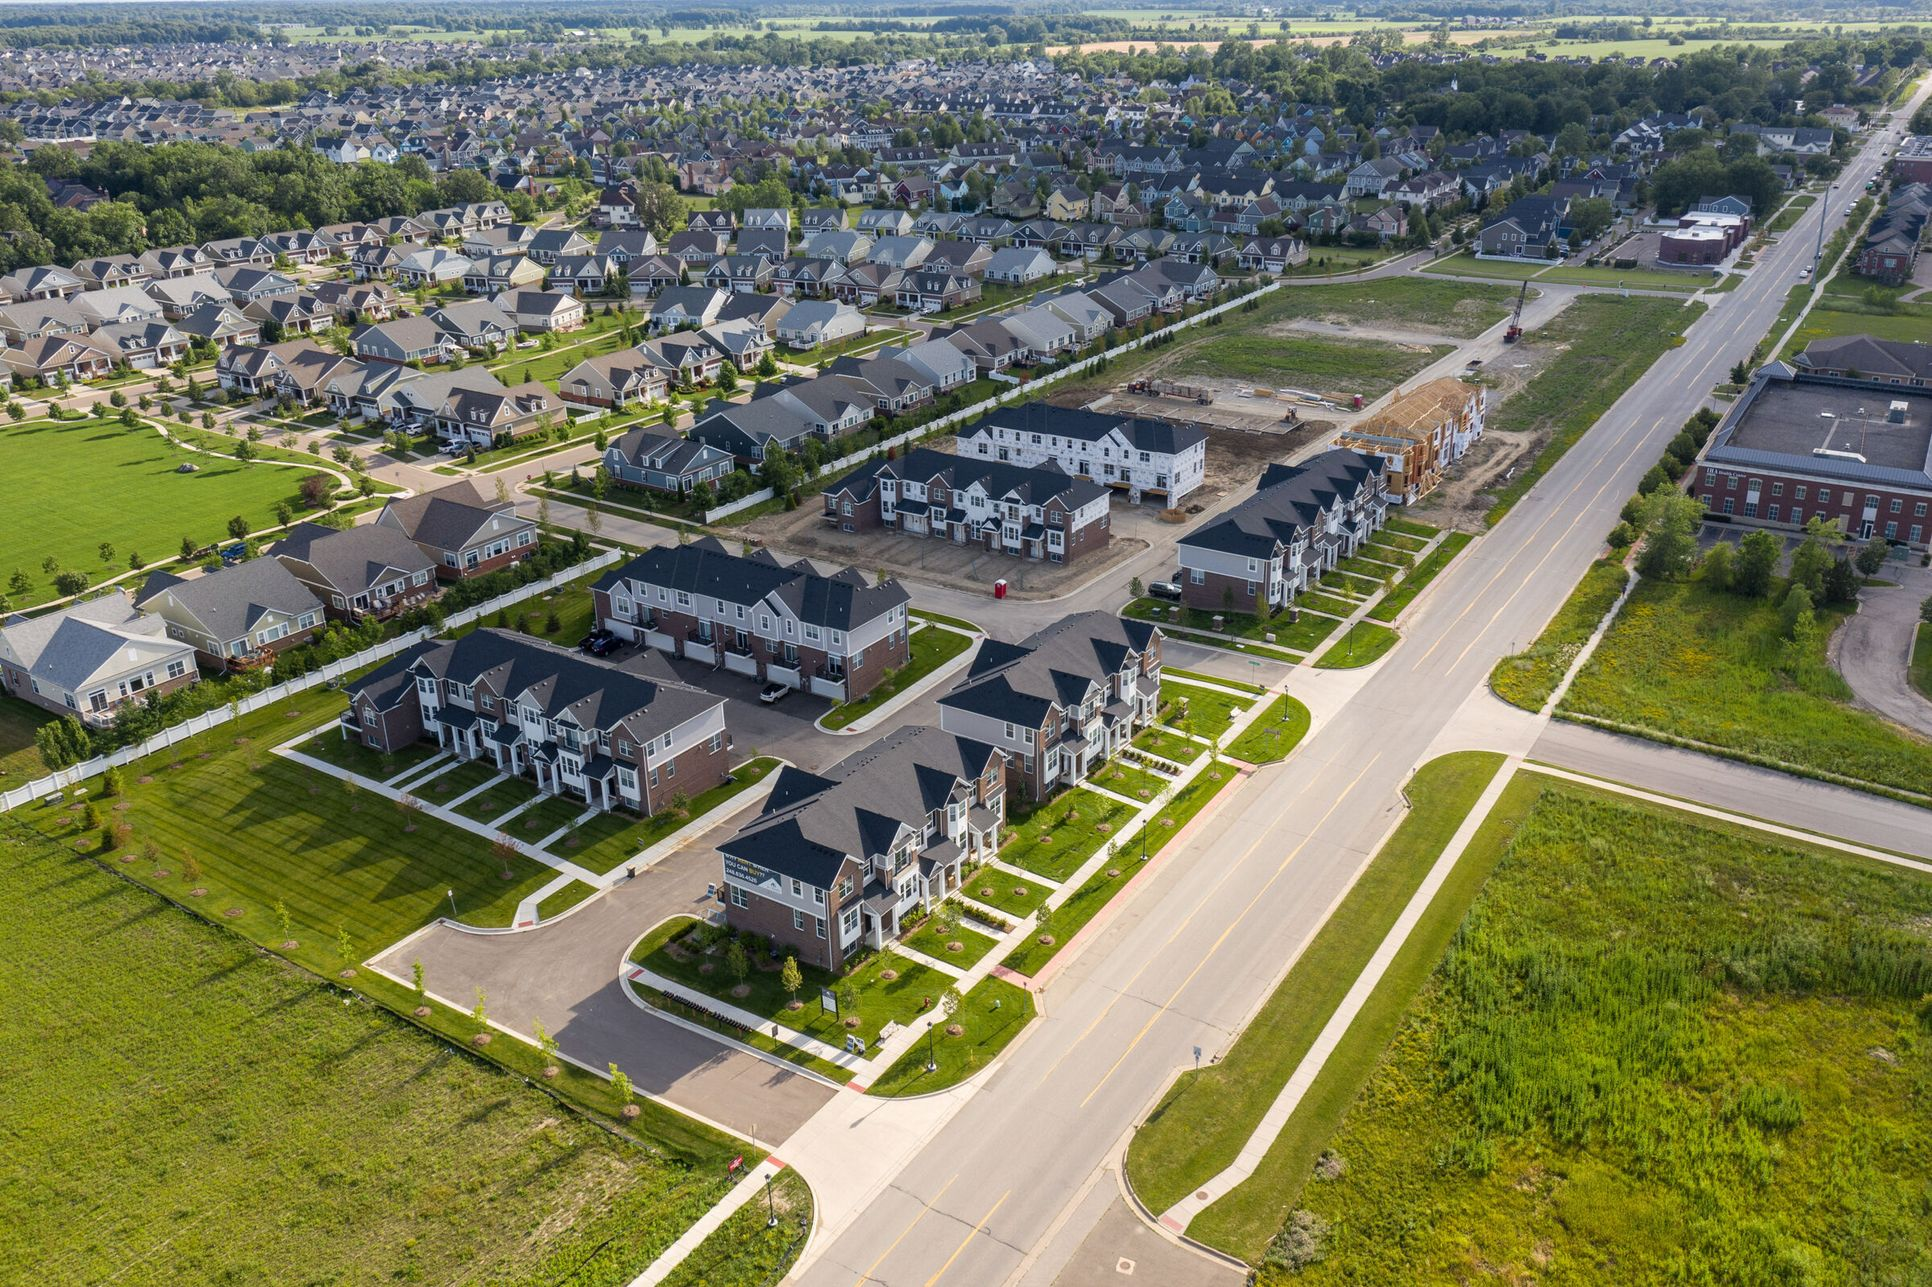 The Towns at Cherry Hill Aerial